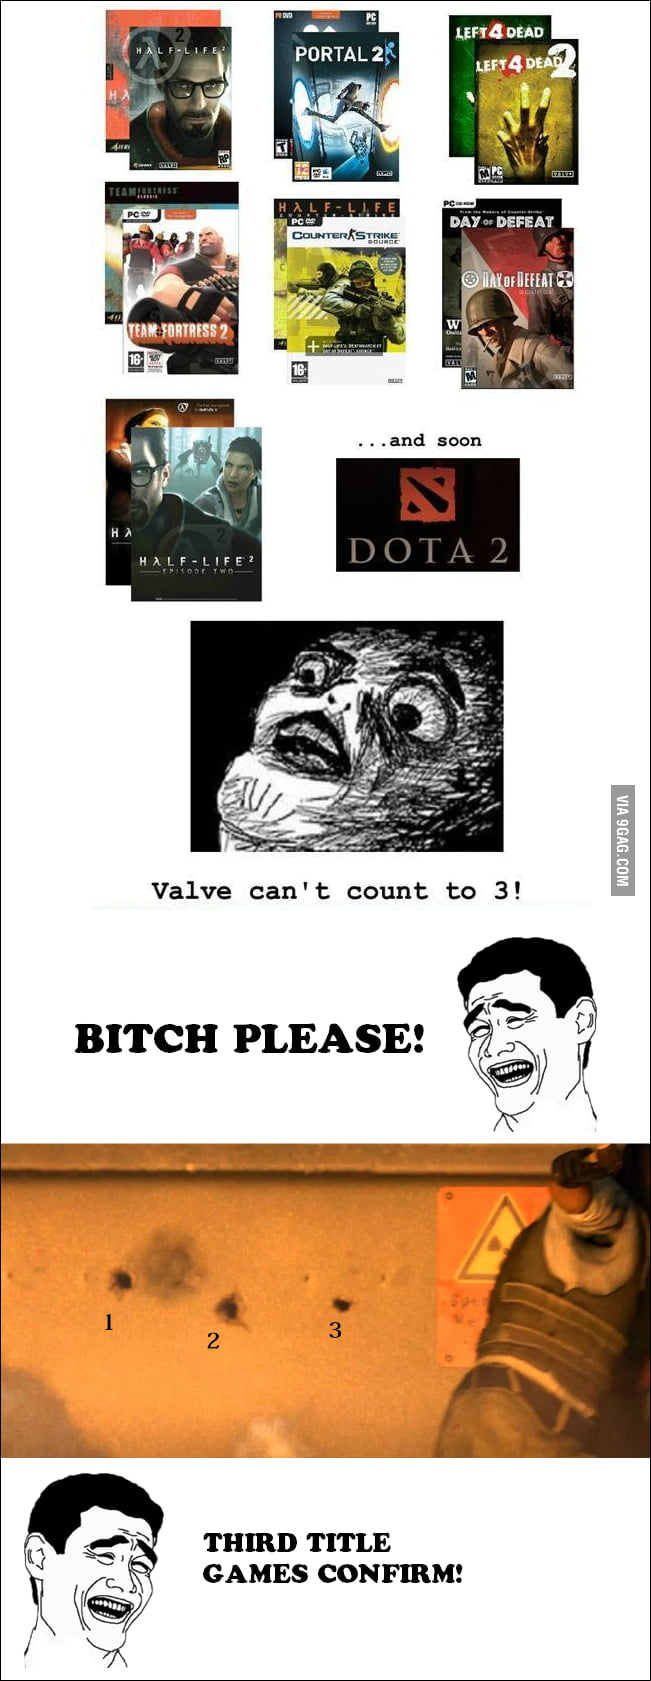 Valve can count to 3